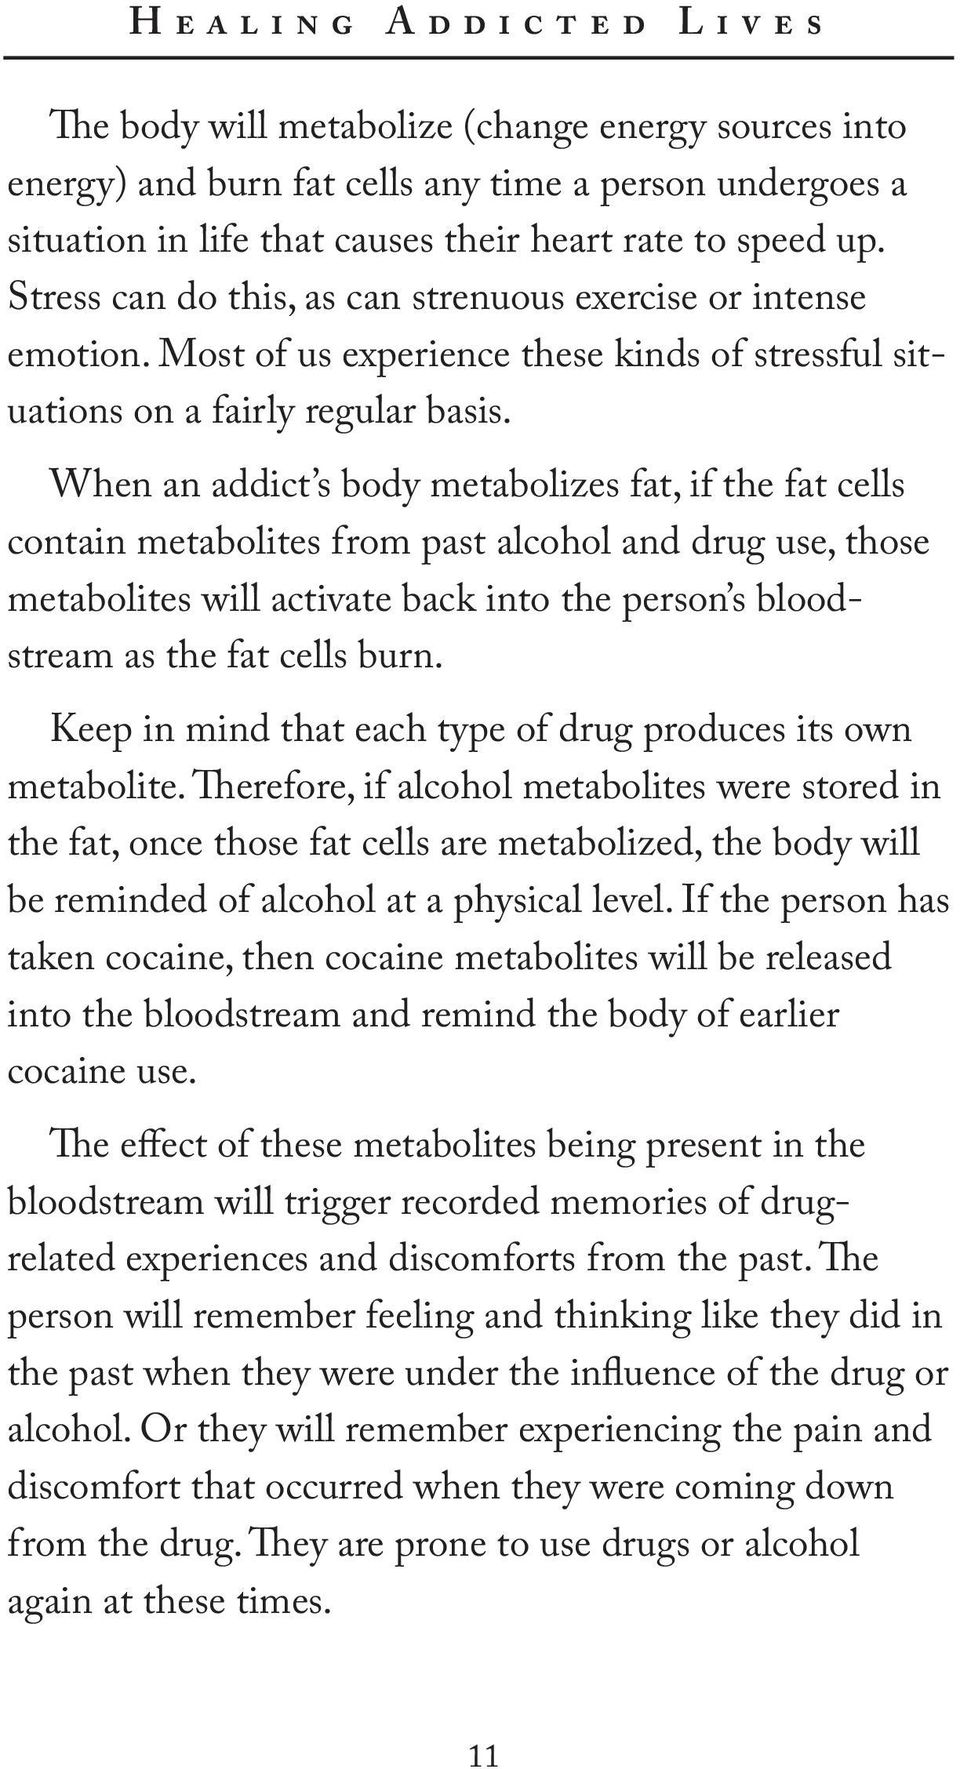 When an addict s body metabolizes fat, if the fat cells contain metabolites from past alcohol and drug use, those metabolites will activate back into the person s bloodstream as the fat cells burn.